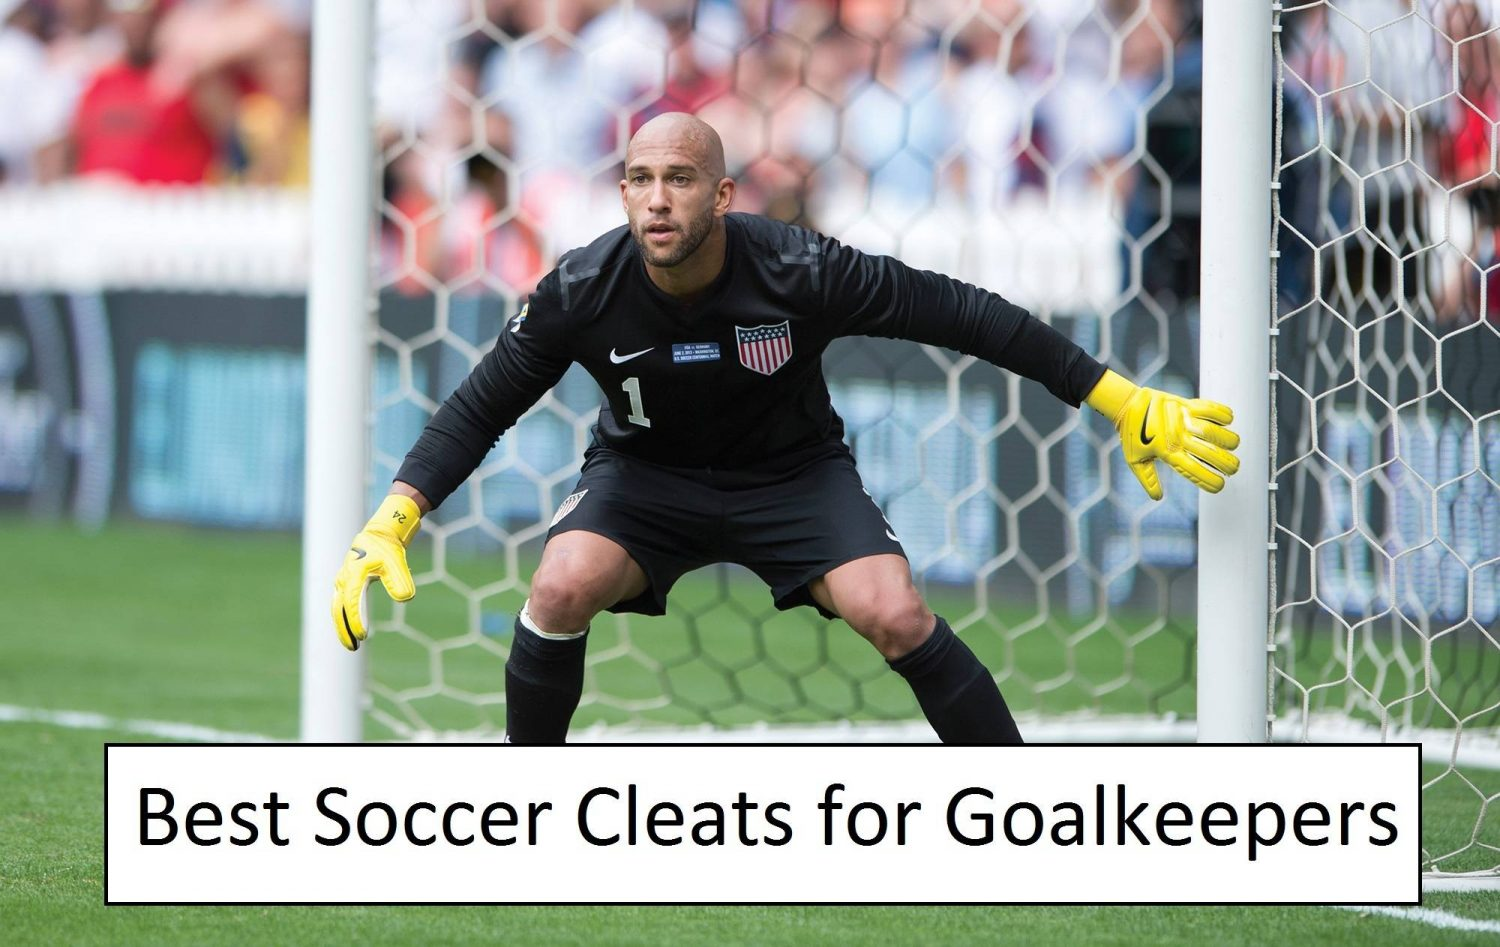 Best Soccer Cleats for Goalkeepers - Check Why! 9ed1d96fe